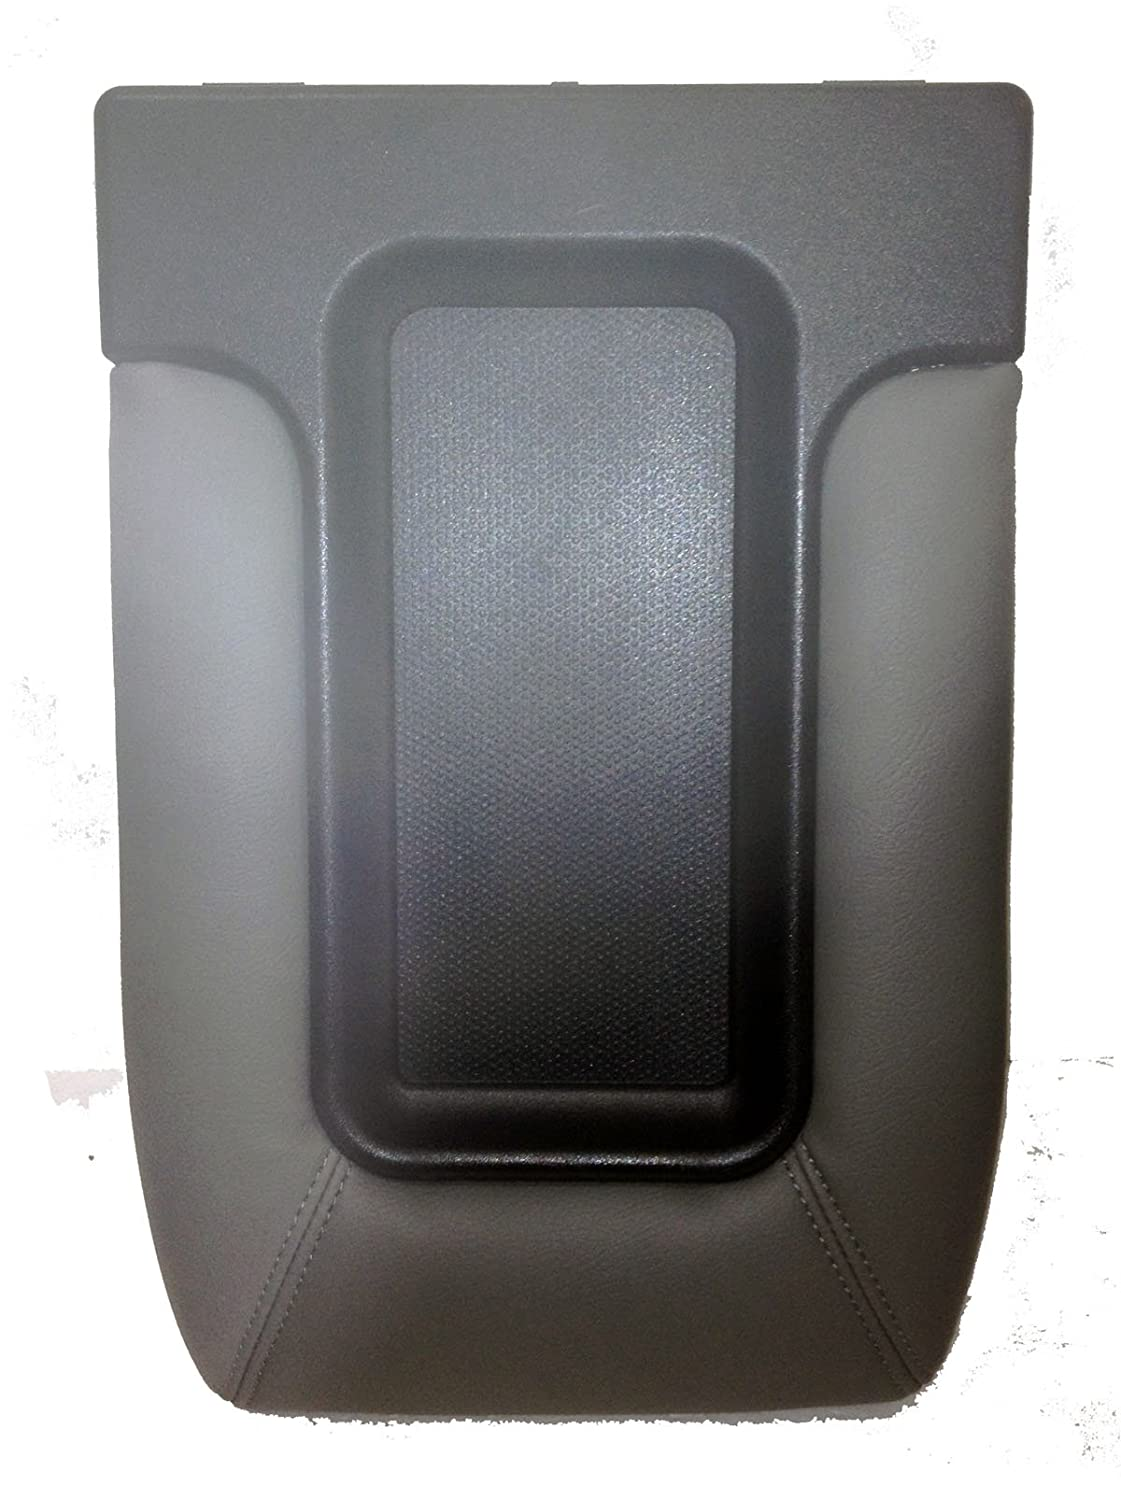 Silverado 2005 chevy silverado center console : Amazon.com: Factory Replacement Center Console Seat Lid 99-06 ...